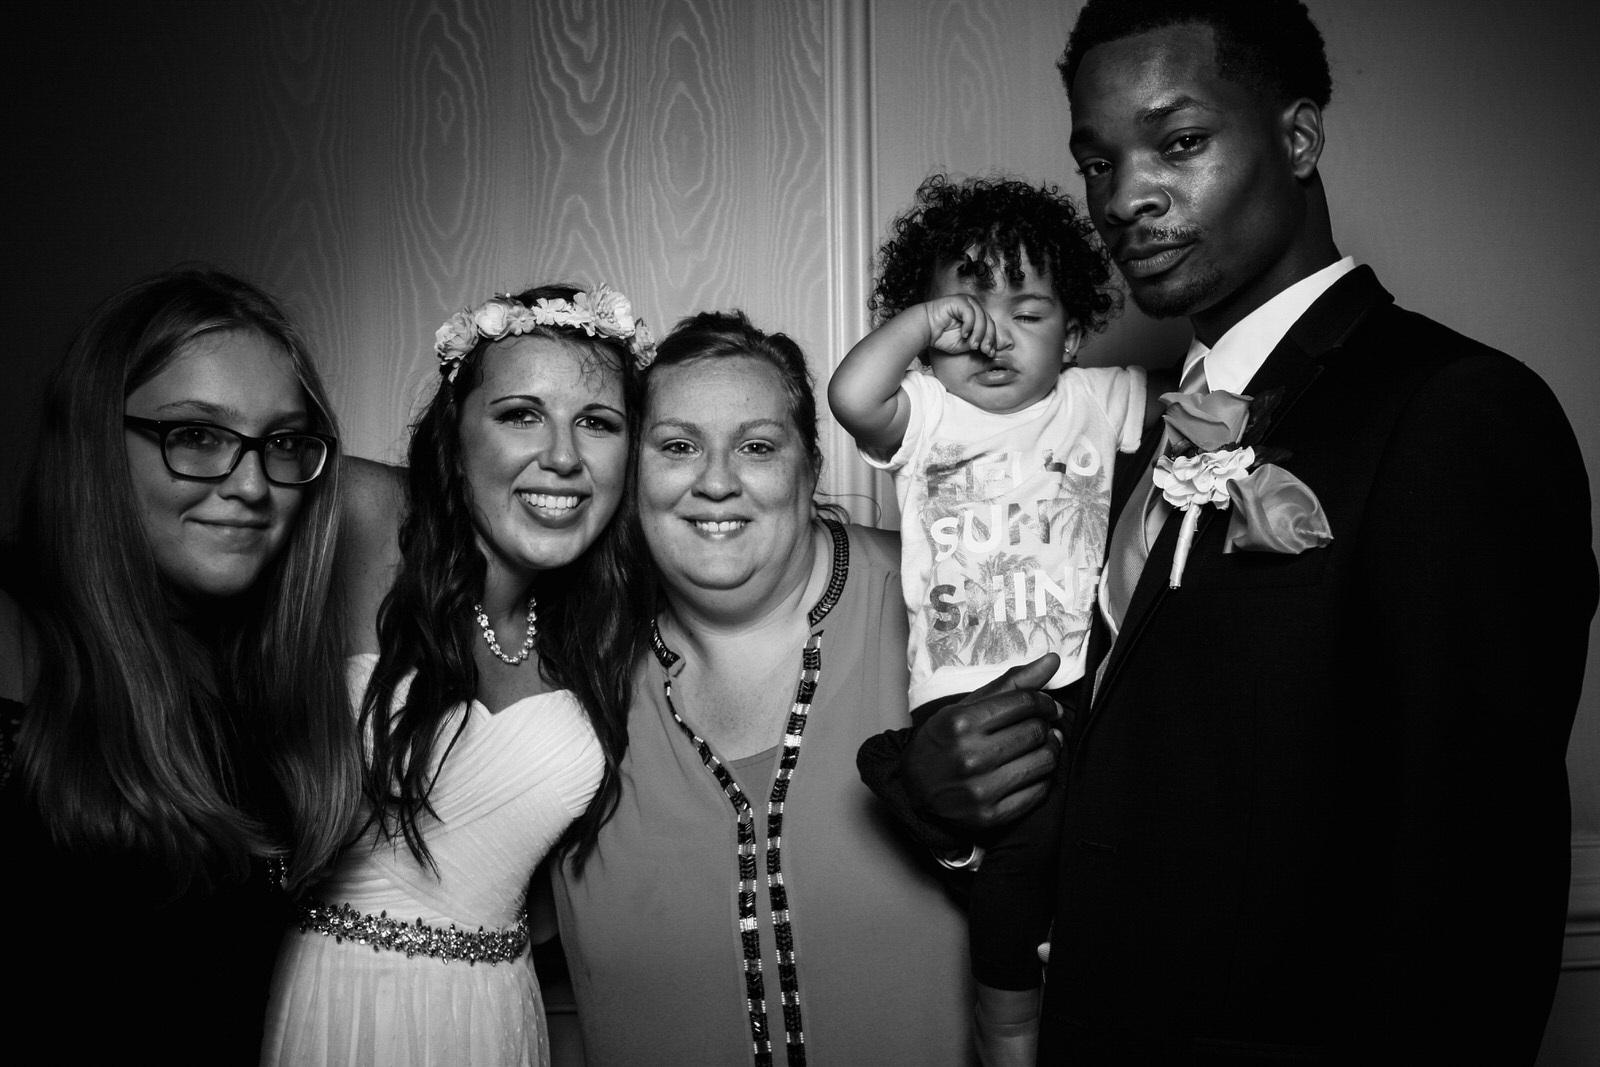 Ashley-Tyrone-Wedding-Photo-Booth-Presidential_Norristown-Wedding-33.jpg